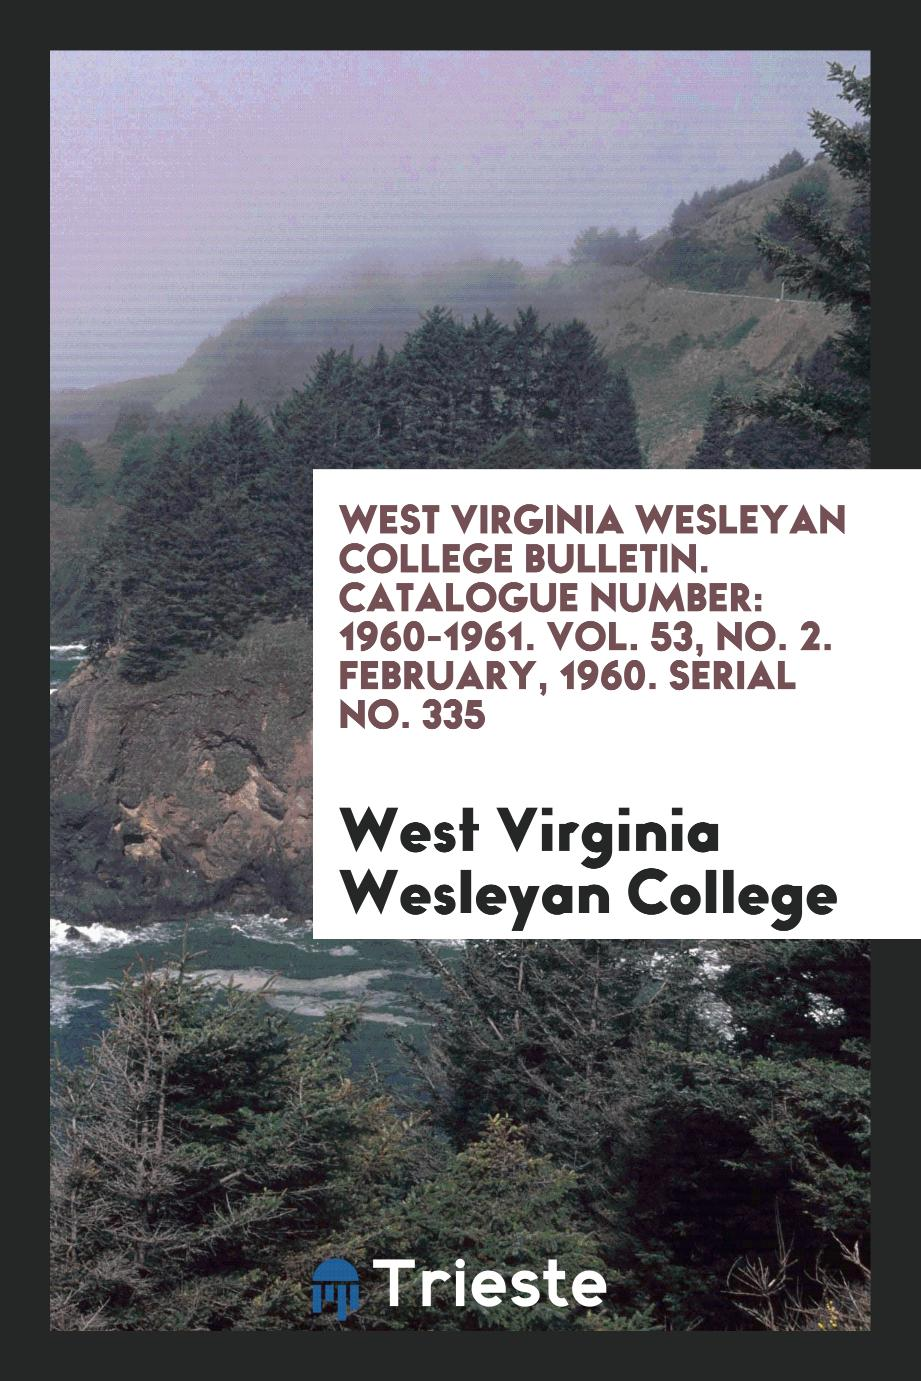 West Virginia Wesleyan College Bulletin. Catalogue Number: 1960-1961. Vol. 53, No. 2. February, 1960. Serial No. 335